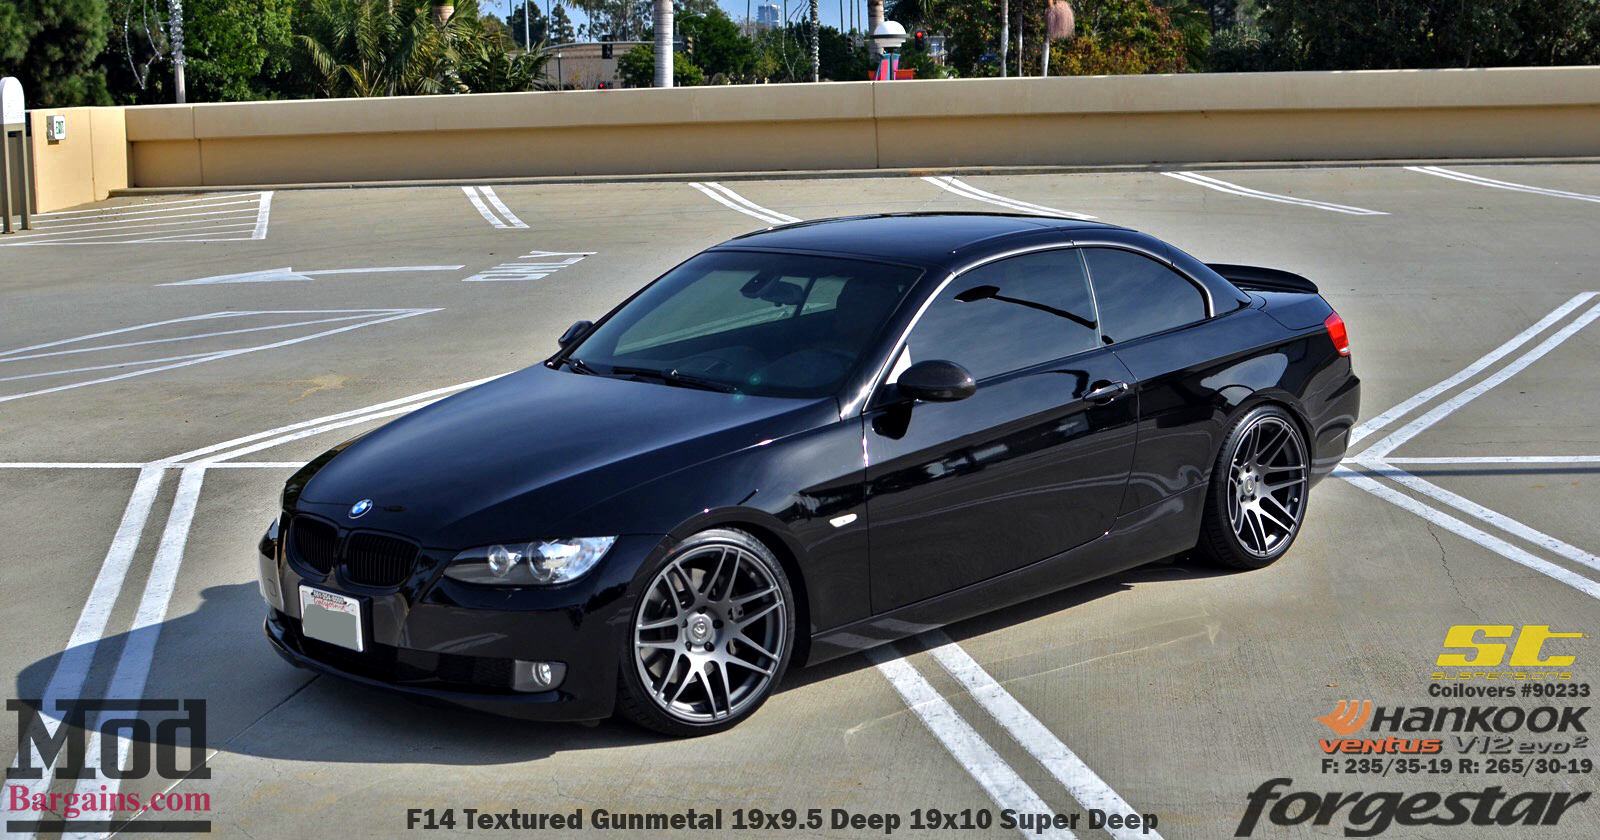 jeff k s bmw e93 on st coilovers with forgestar f14 wheels defines cali style. Black Bedroom Furniture Sets. Home Design Ideas